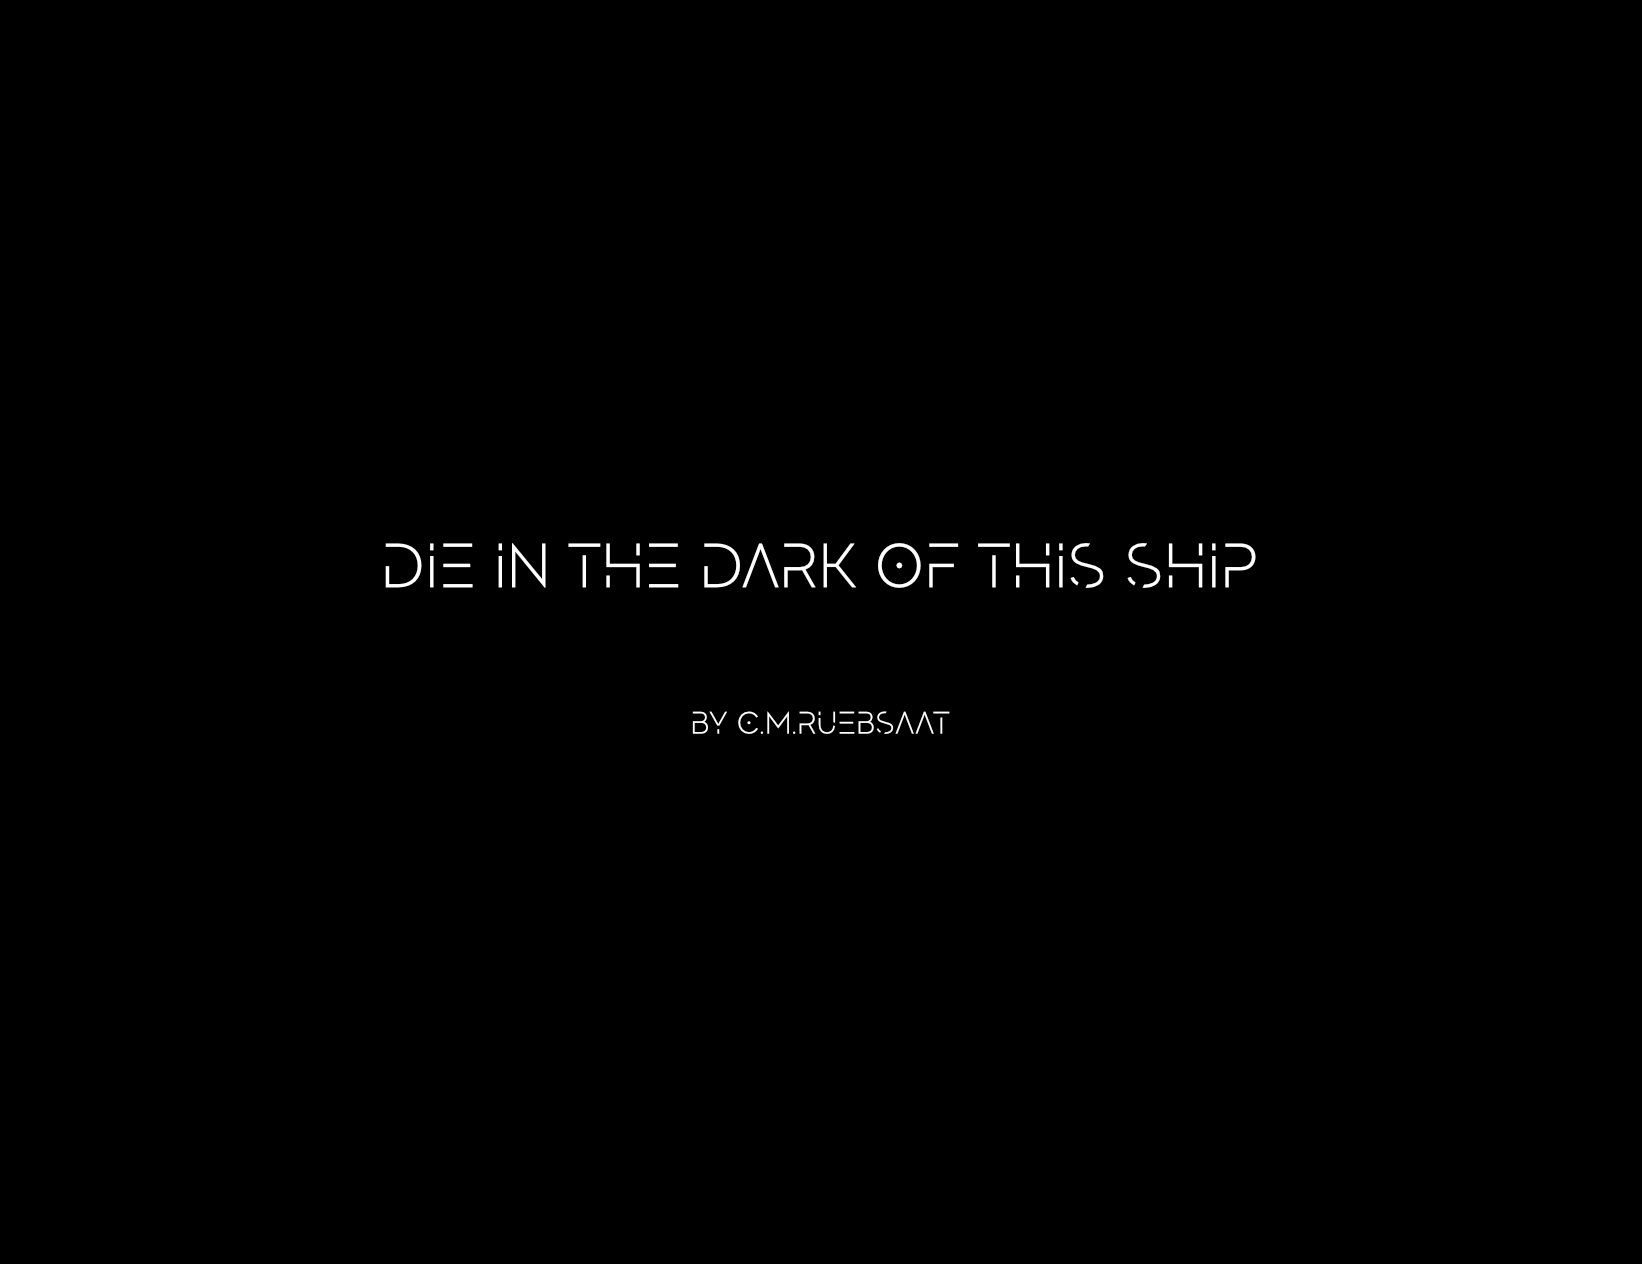 Die In the Dark of This Ship